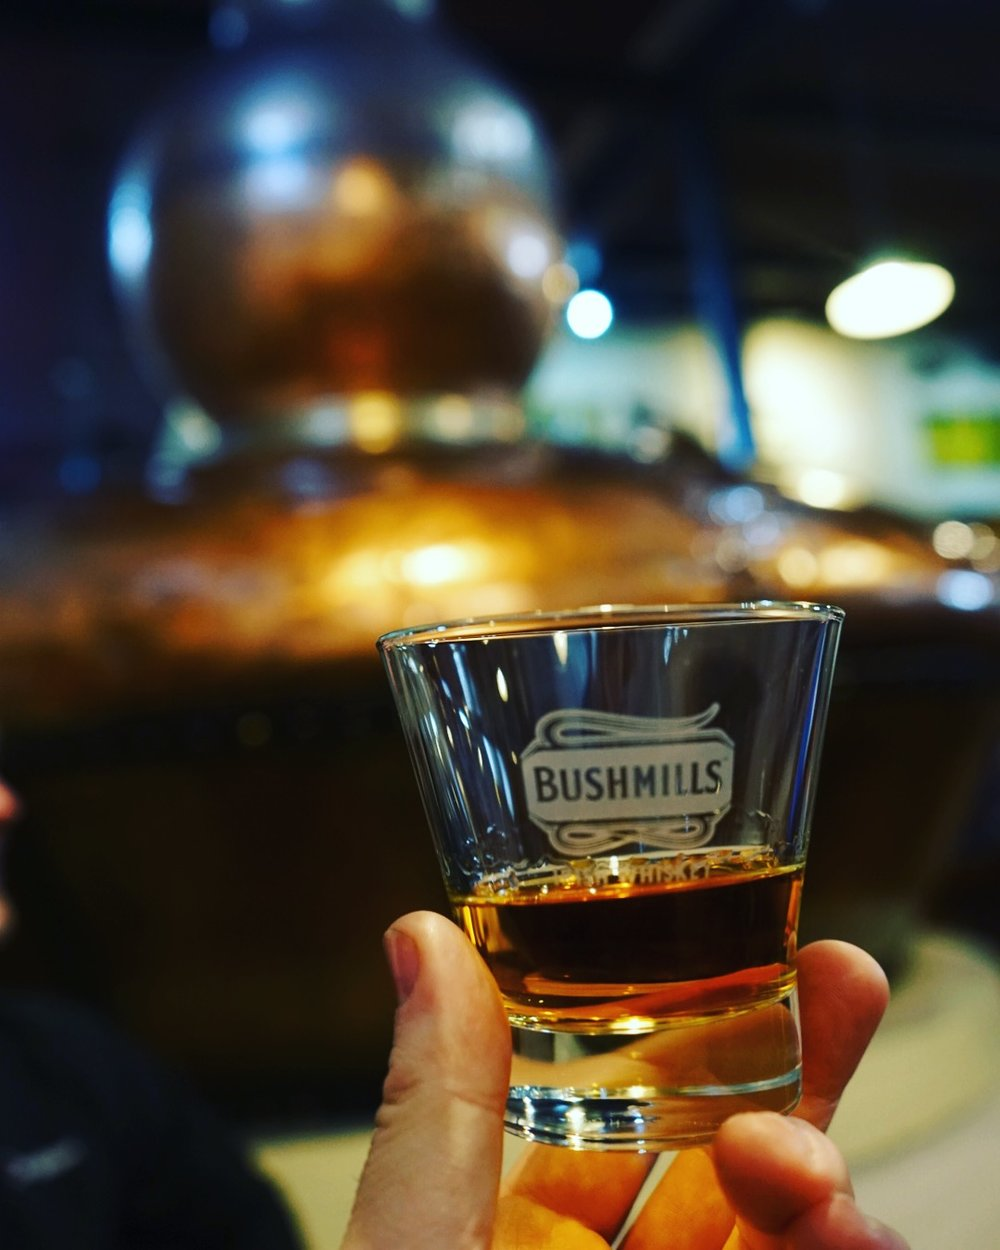 THERE'S MORE TO BUSHMILLS THAN WHISKEY - Irish Feast walking tours of Bushmills. Who knew there was so much to see, do and eat in this historic little town?